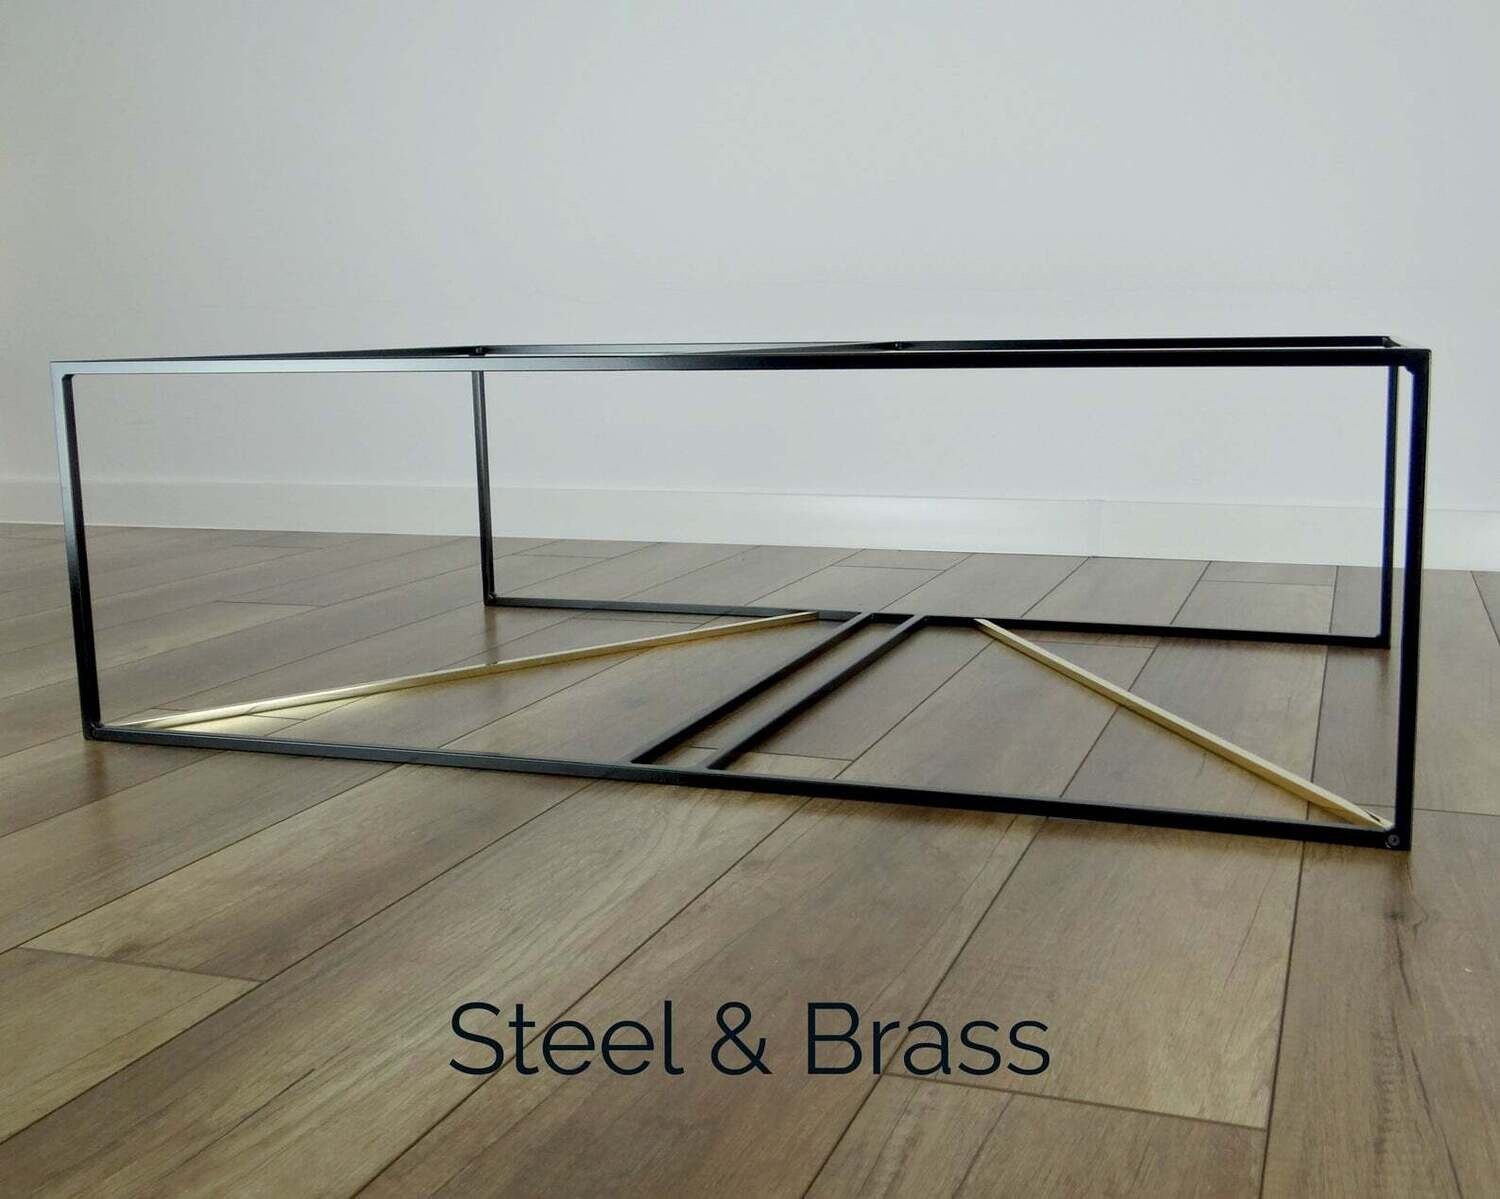 Metal Coffee Table Base 100x60cm. INKA- brass and steel. Large Modern Coffee Table Base. Black Coffee Table Frame. [D078]